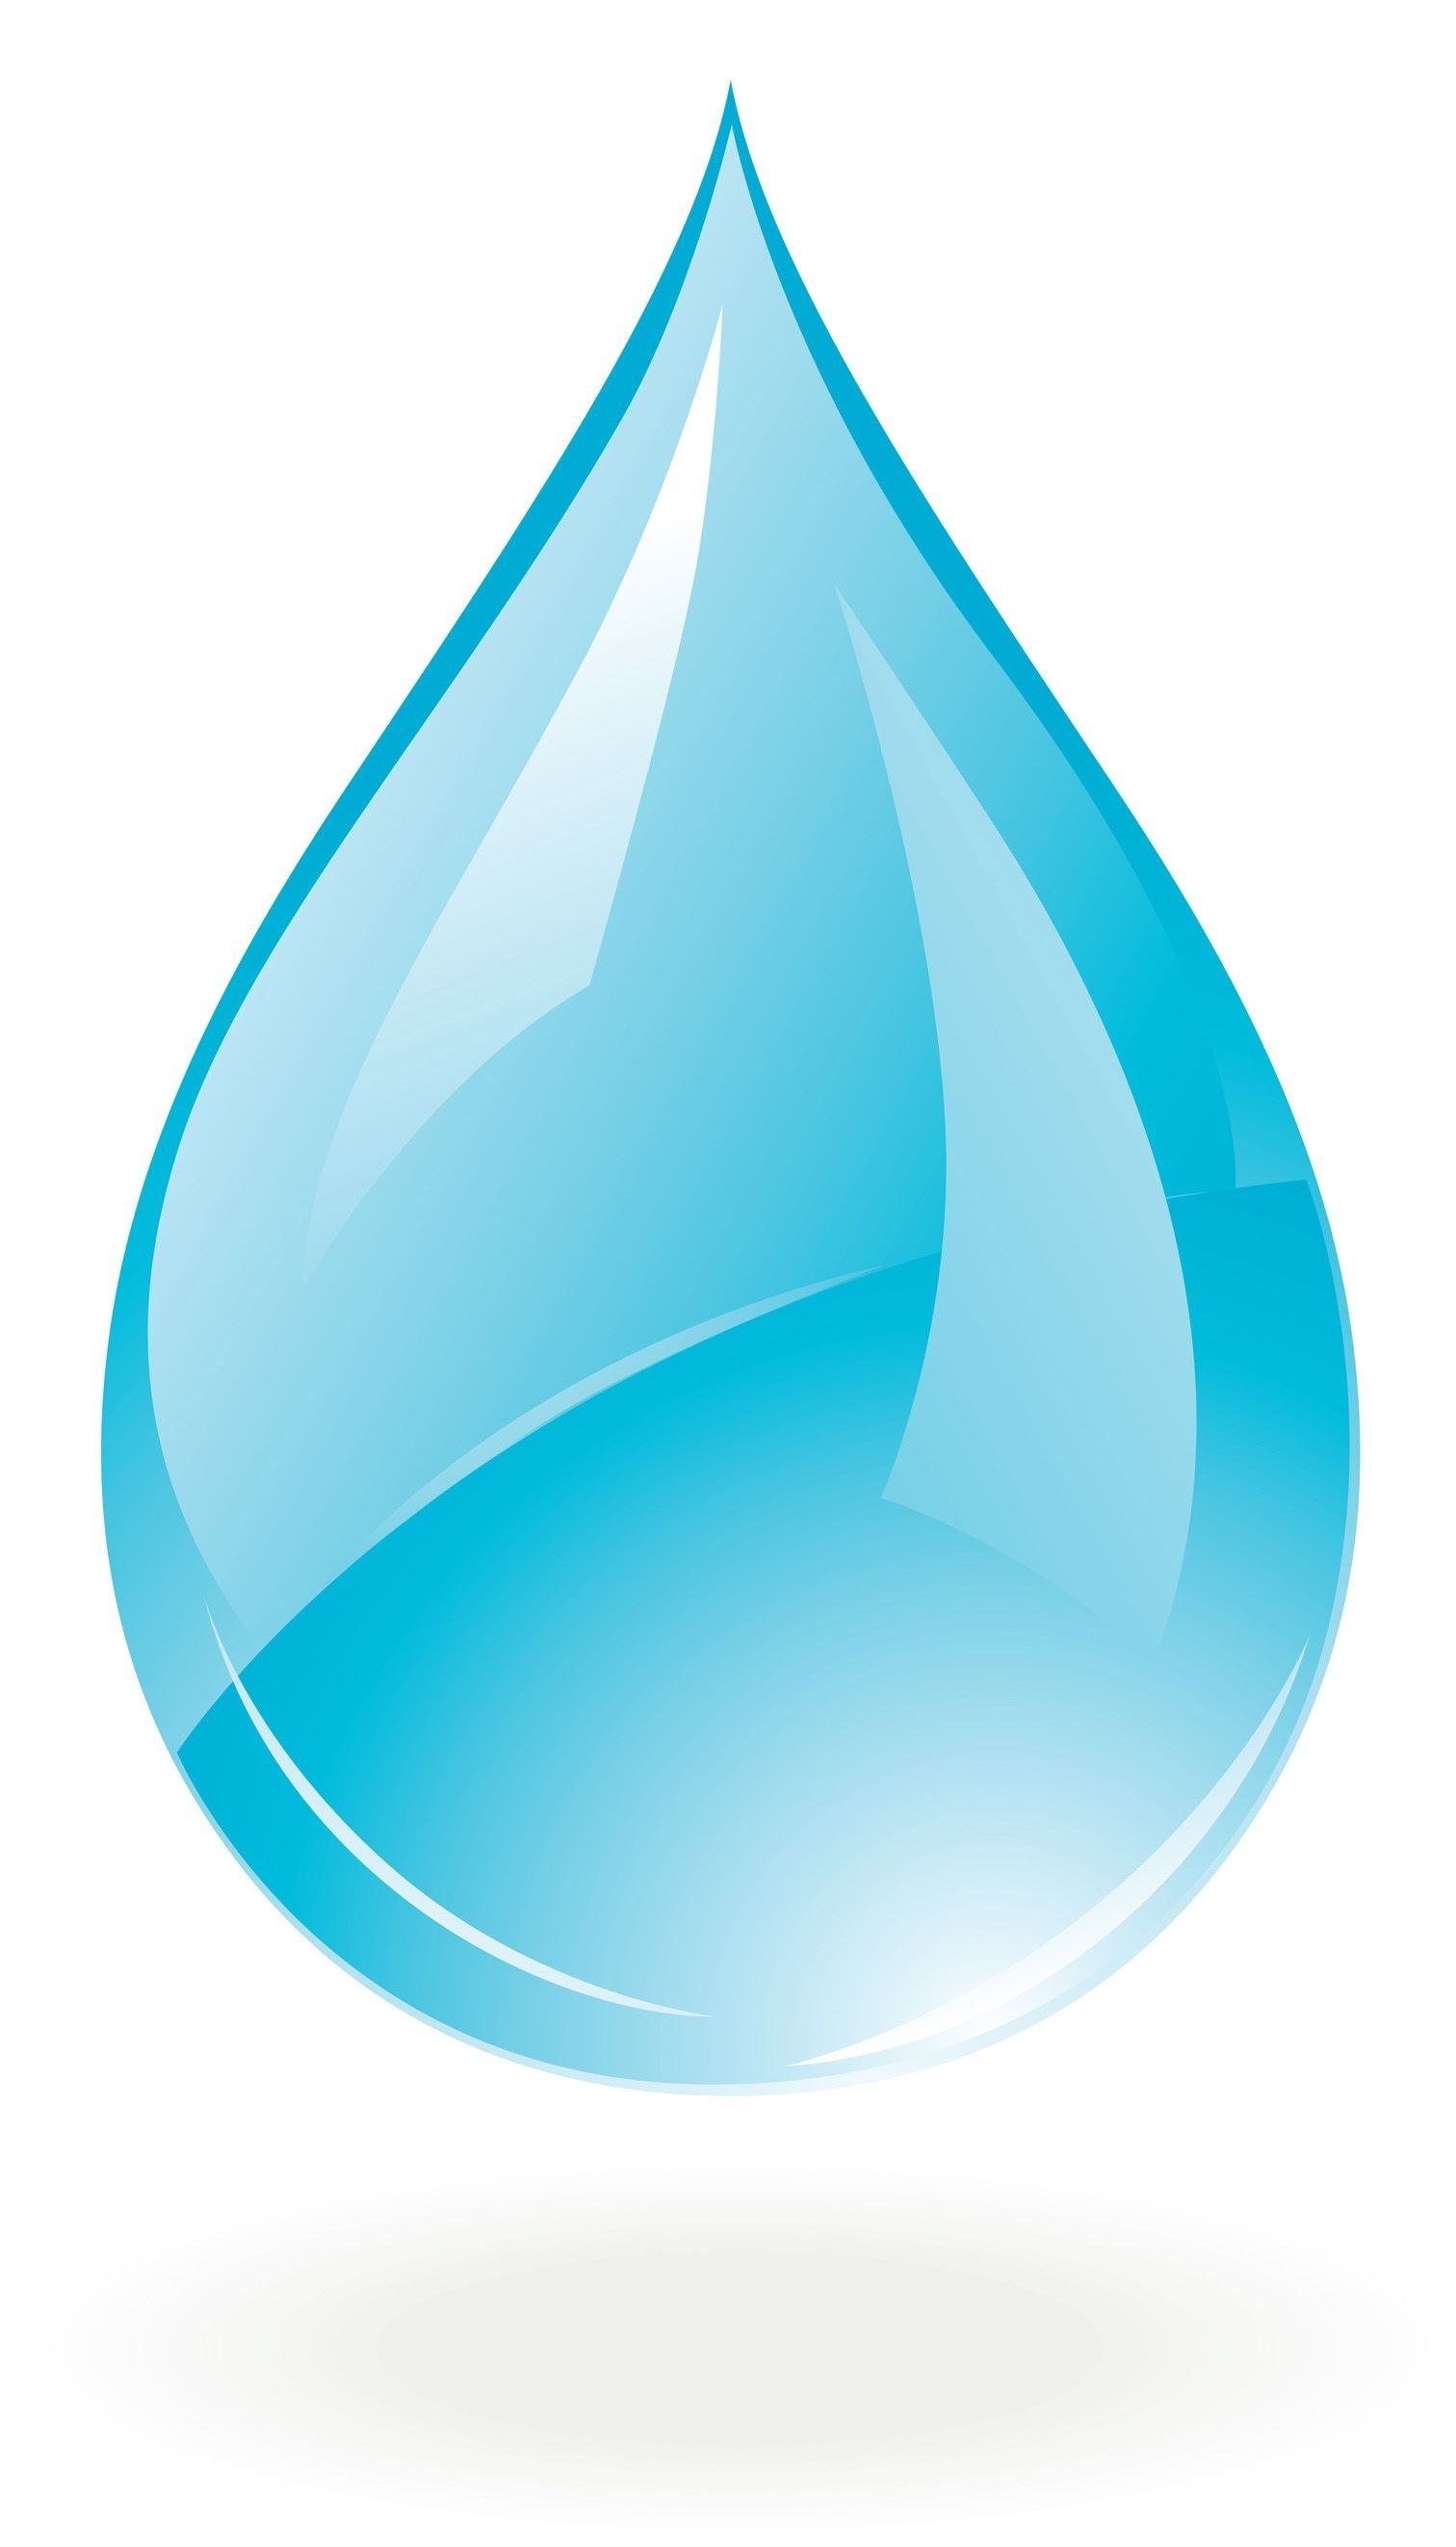 1512x2645 Water Drop Psd Clipart Planning Makes Me Happy